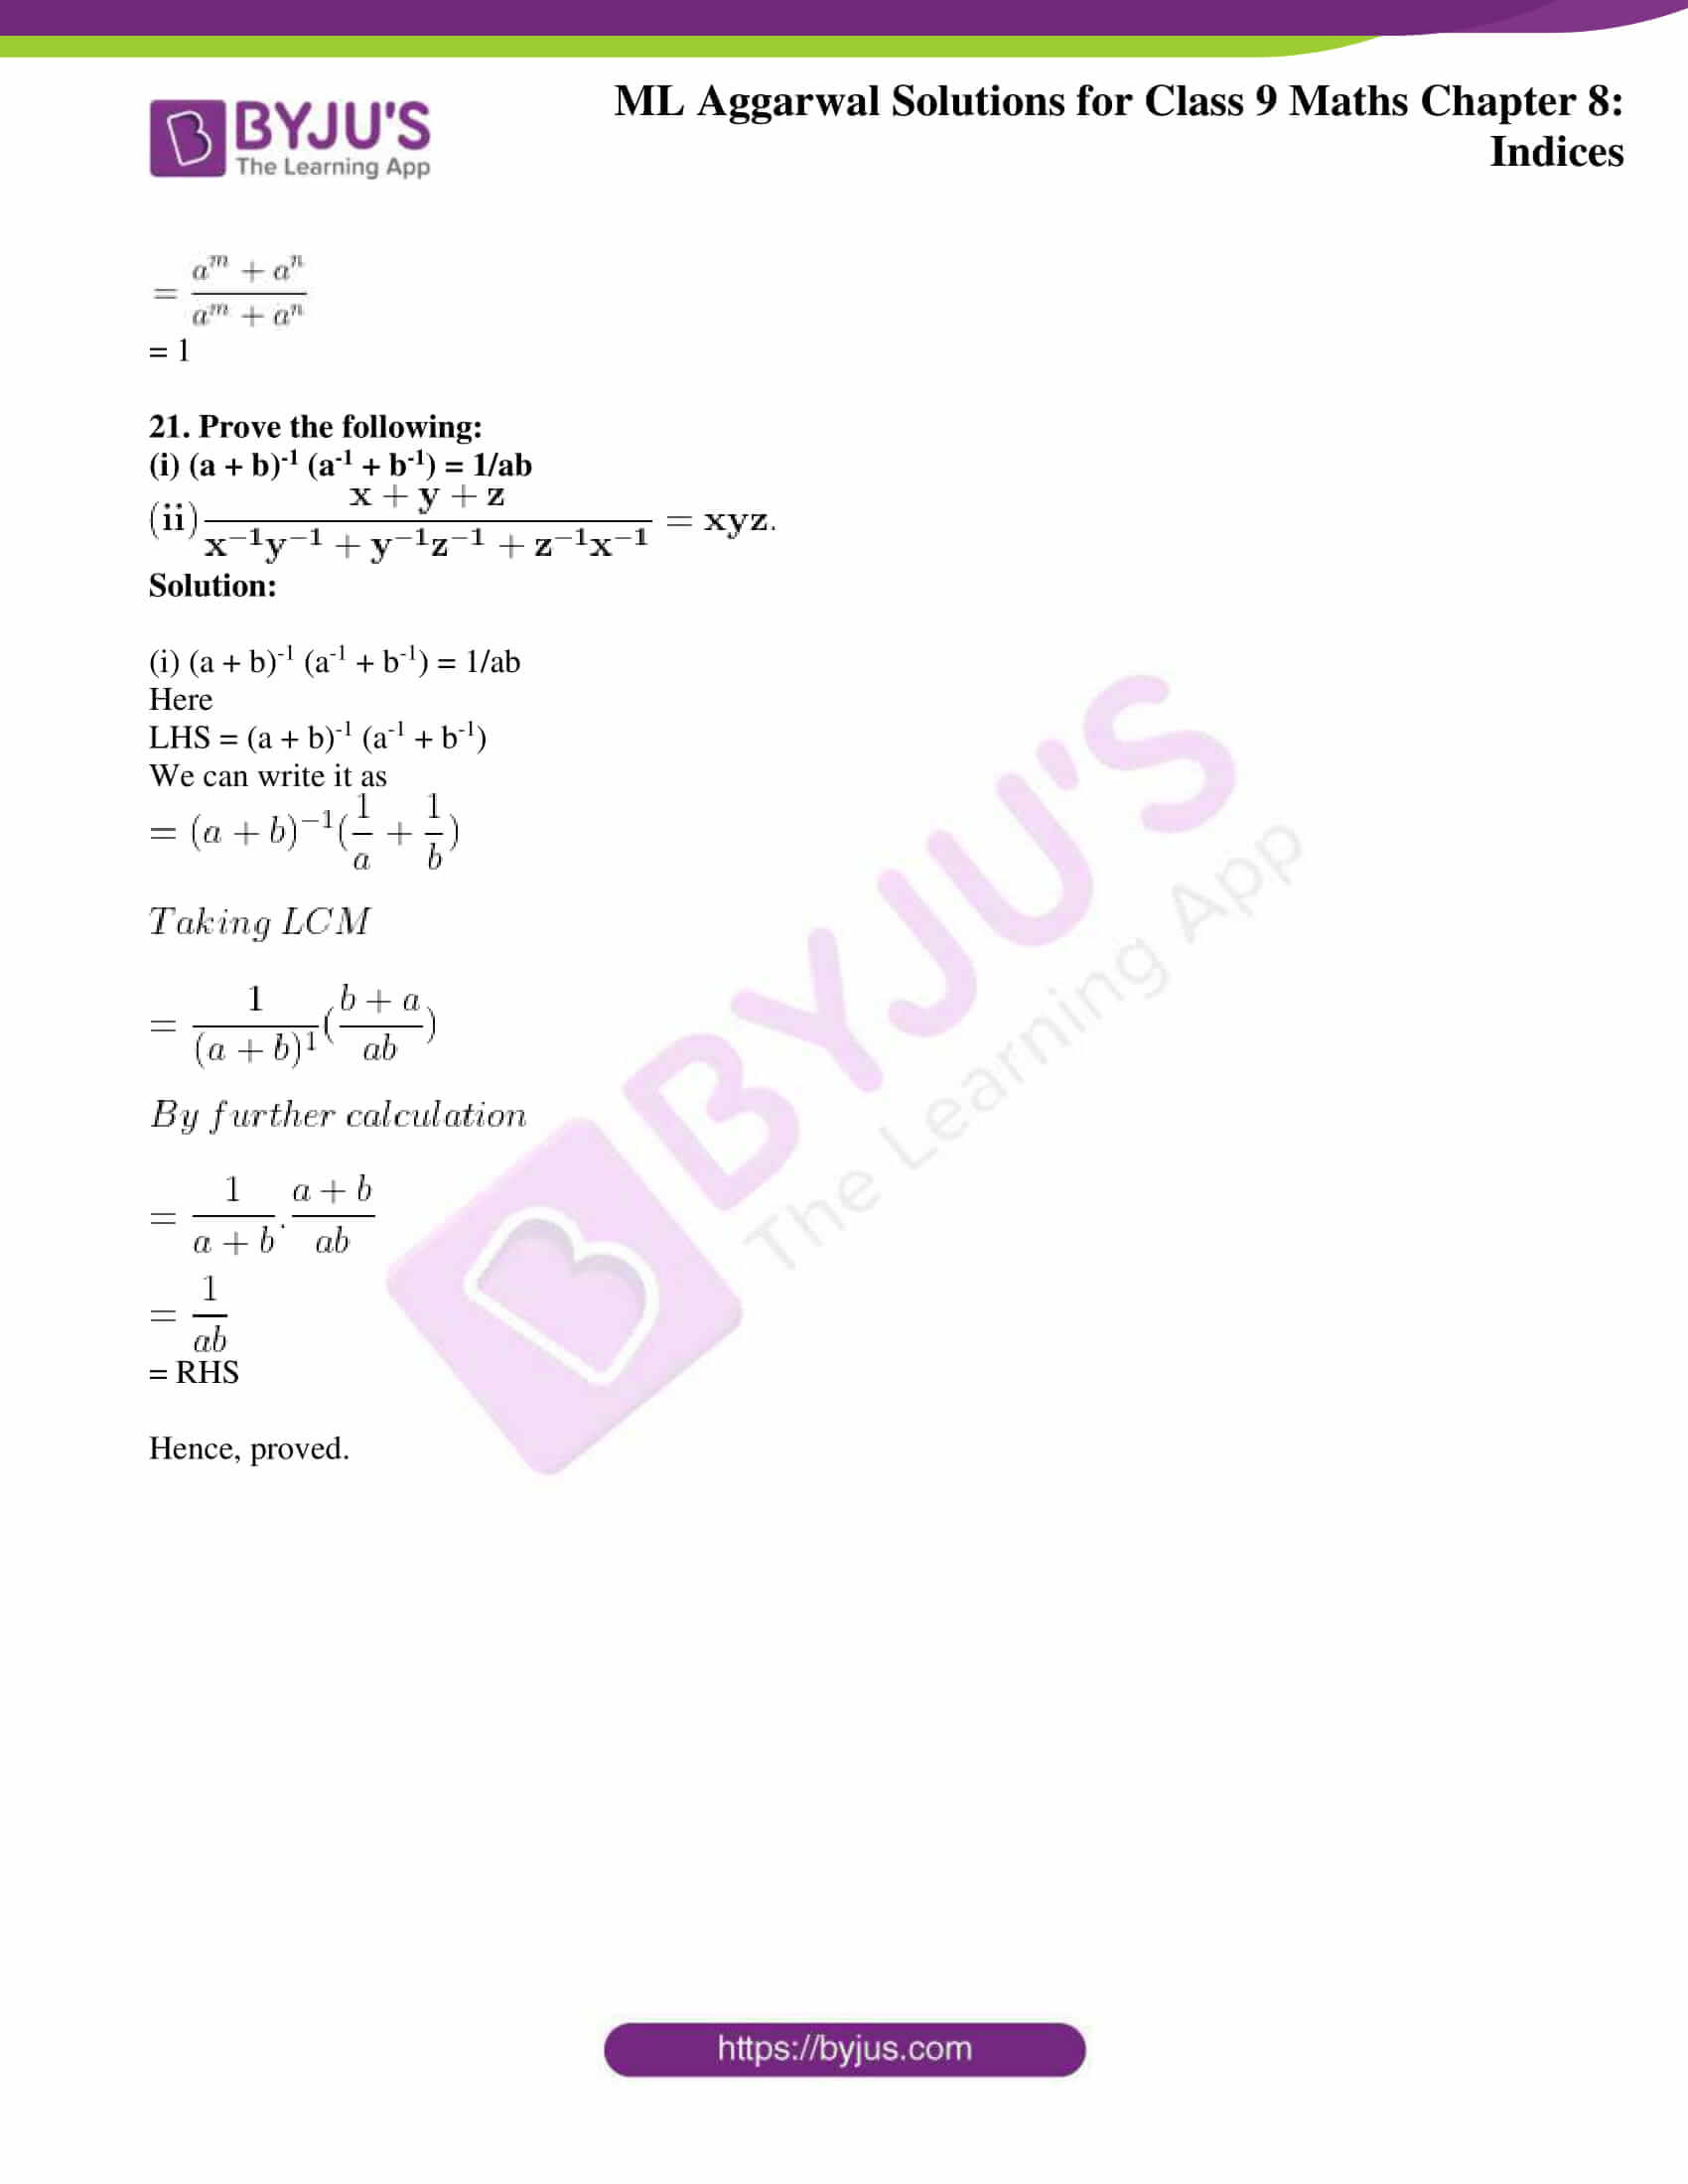 ml aggarwal solutions for class 9 maths chapter 8 24